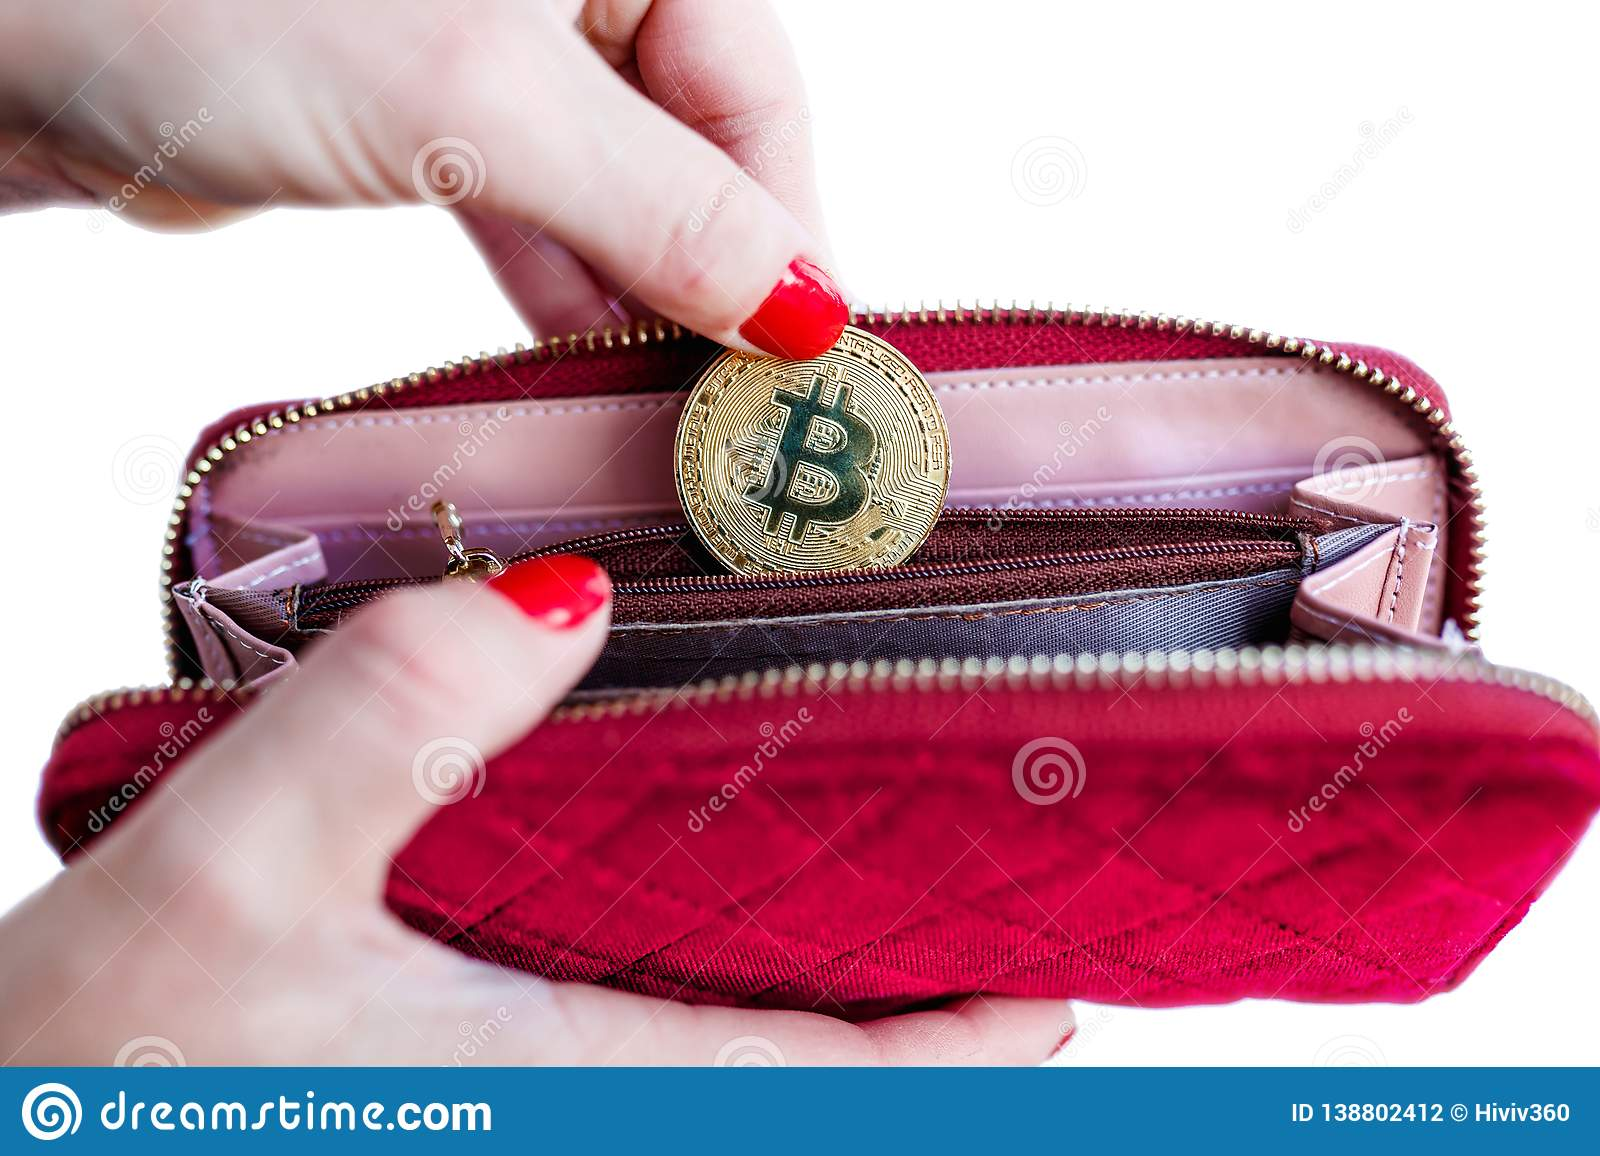 Virtual money golden bitcoin on pink women fabric purse. fingers with red nails on a coin isolated on white background